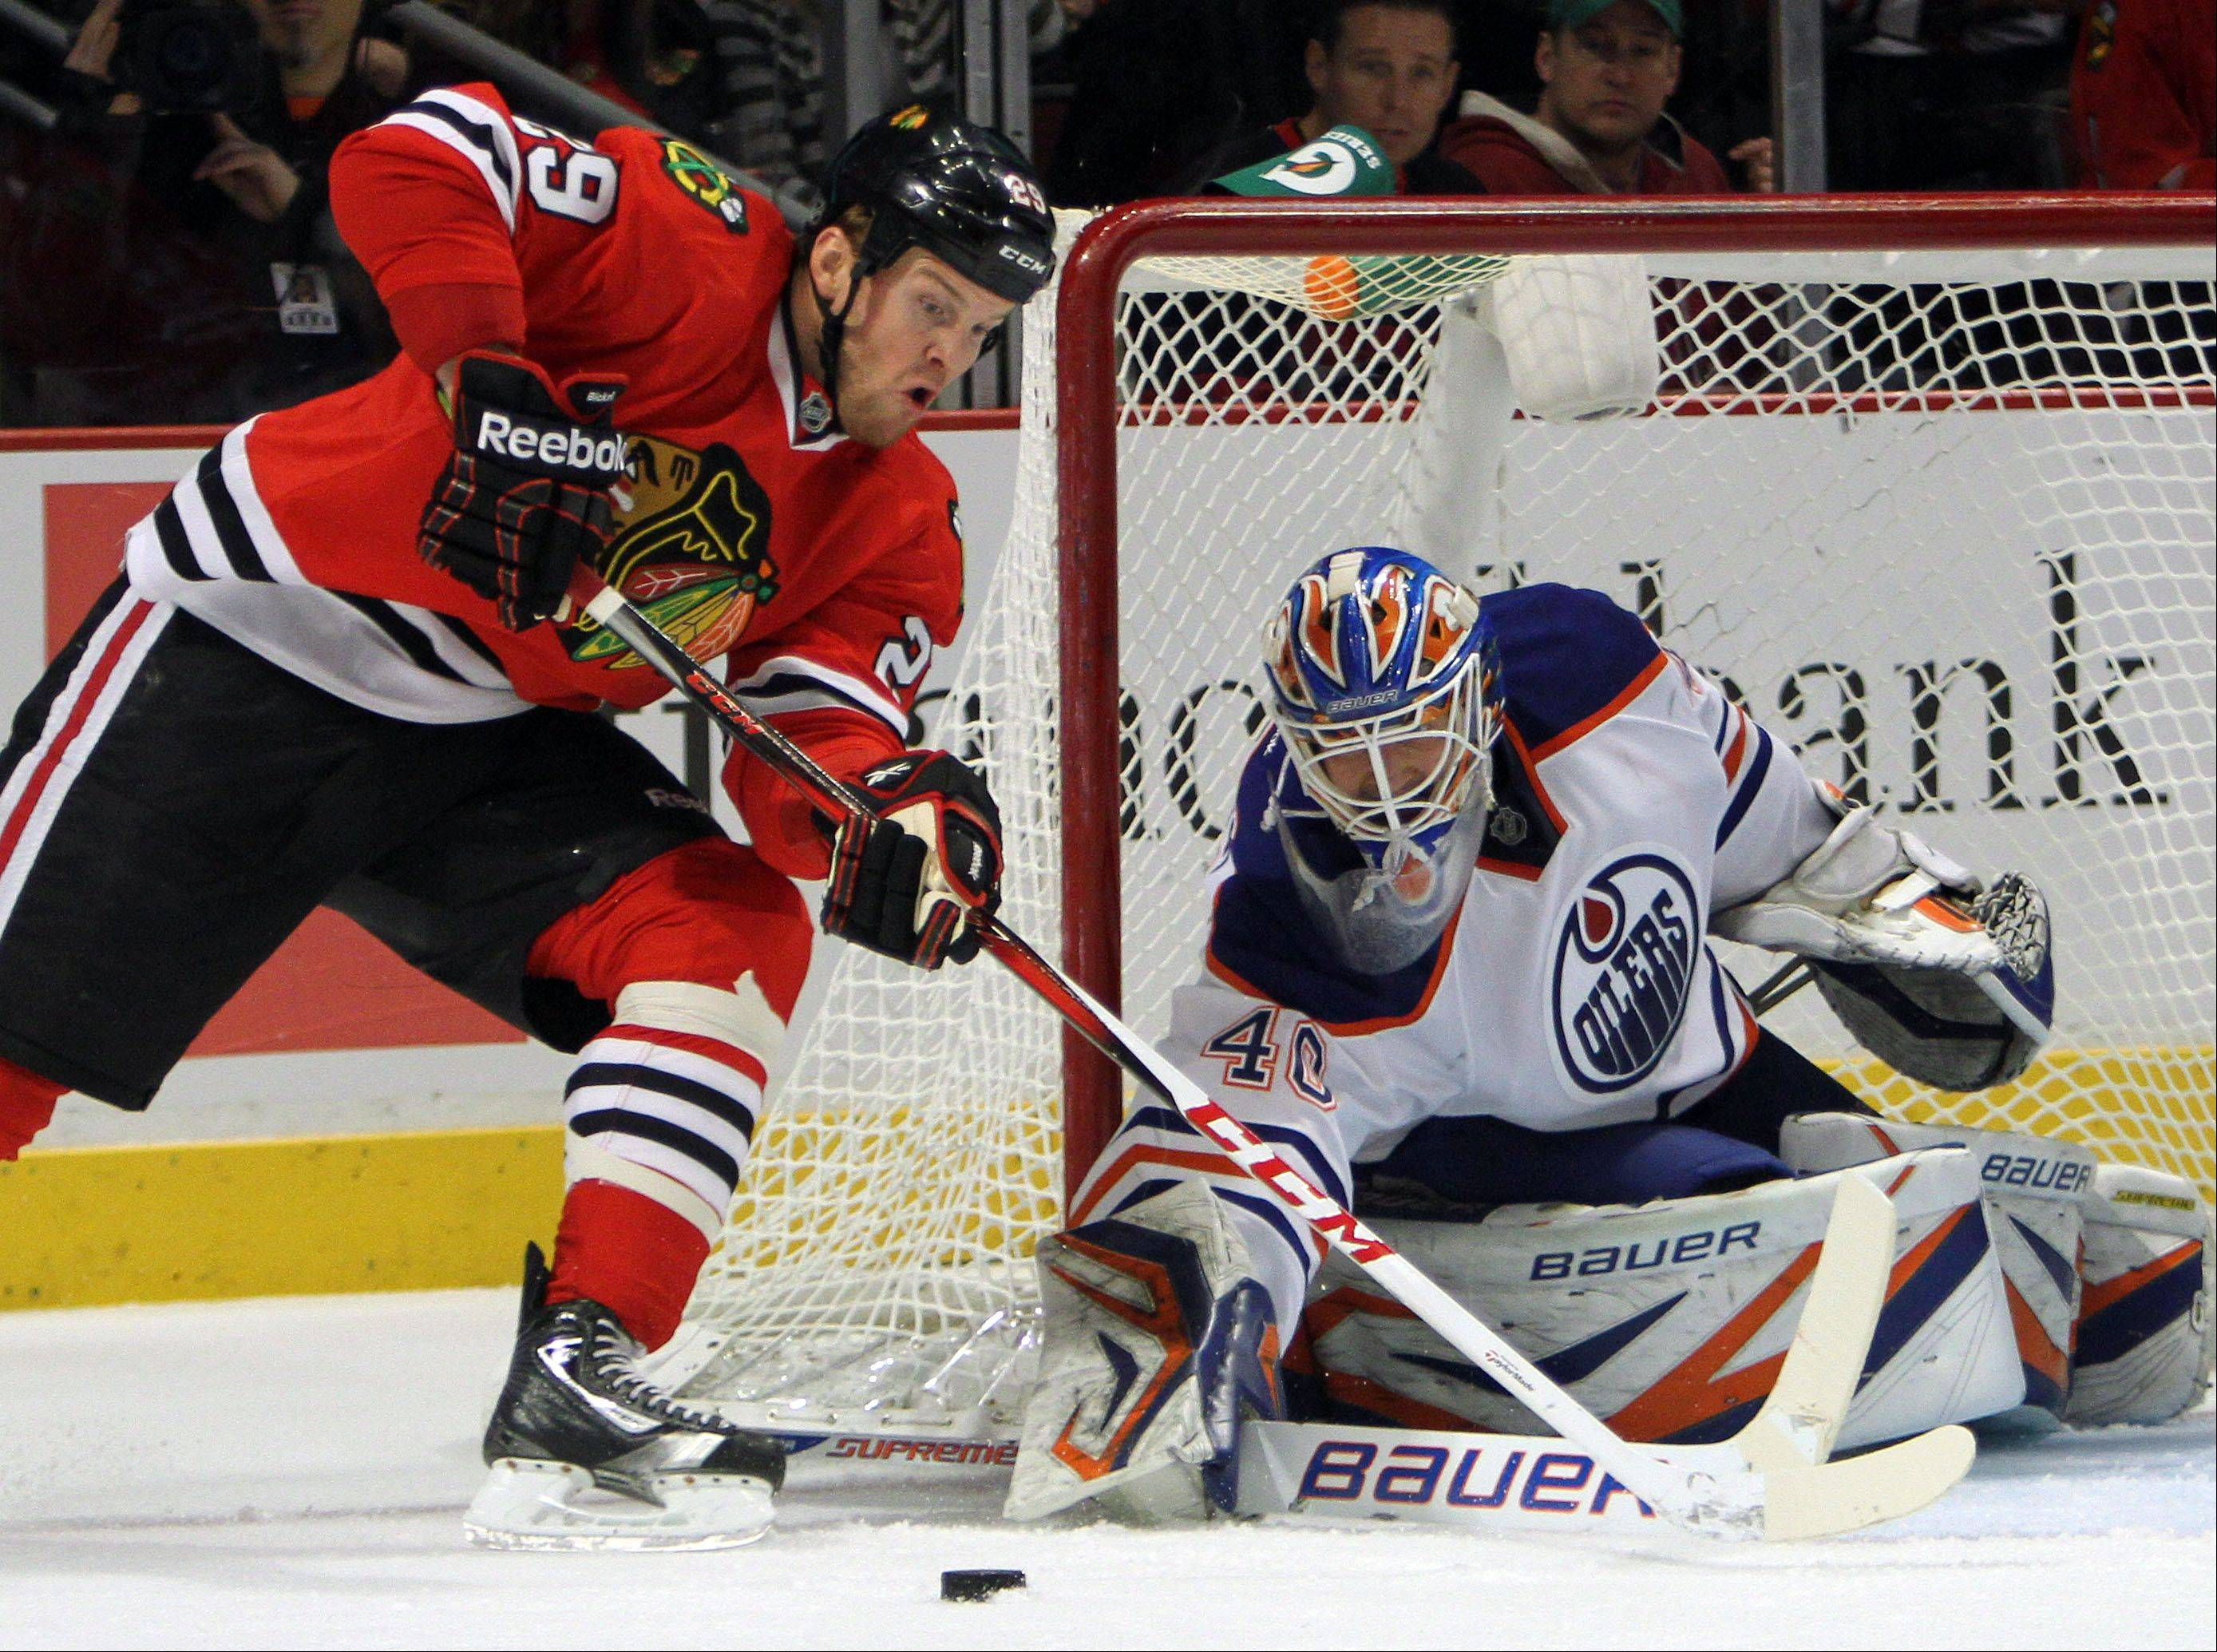 Chicago Blackhawks left wing Bryan Bickell gets a scoring opportunity against Edmonton Oilers goalie Devan Dubnyk during their game Sunday night at the United Center in Chicago.